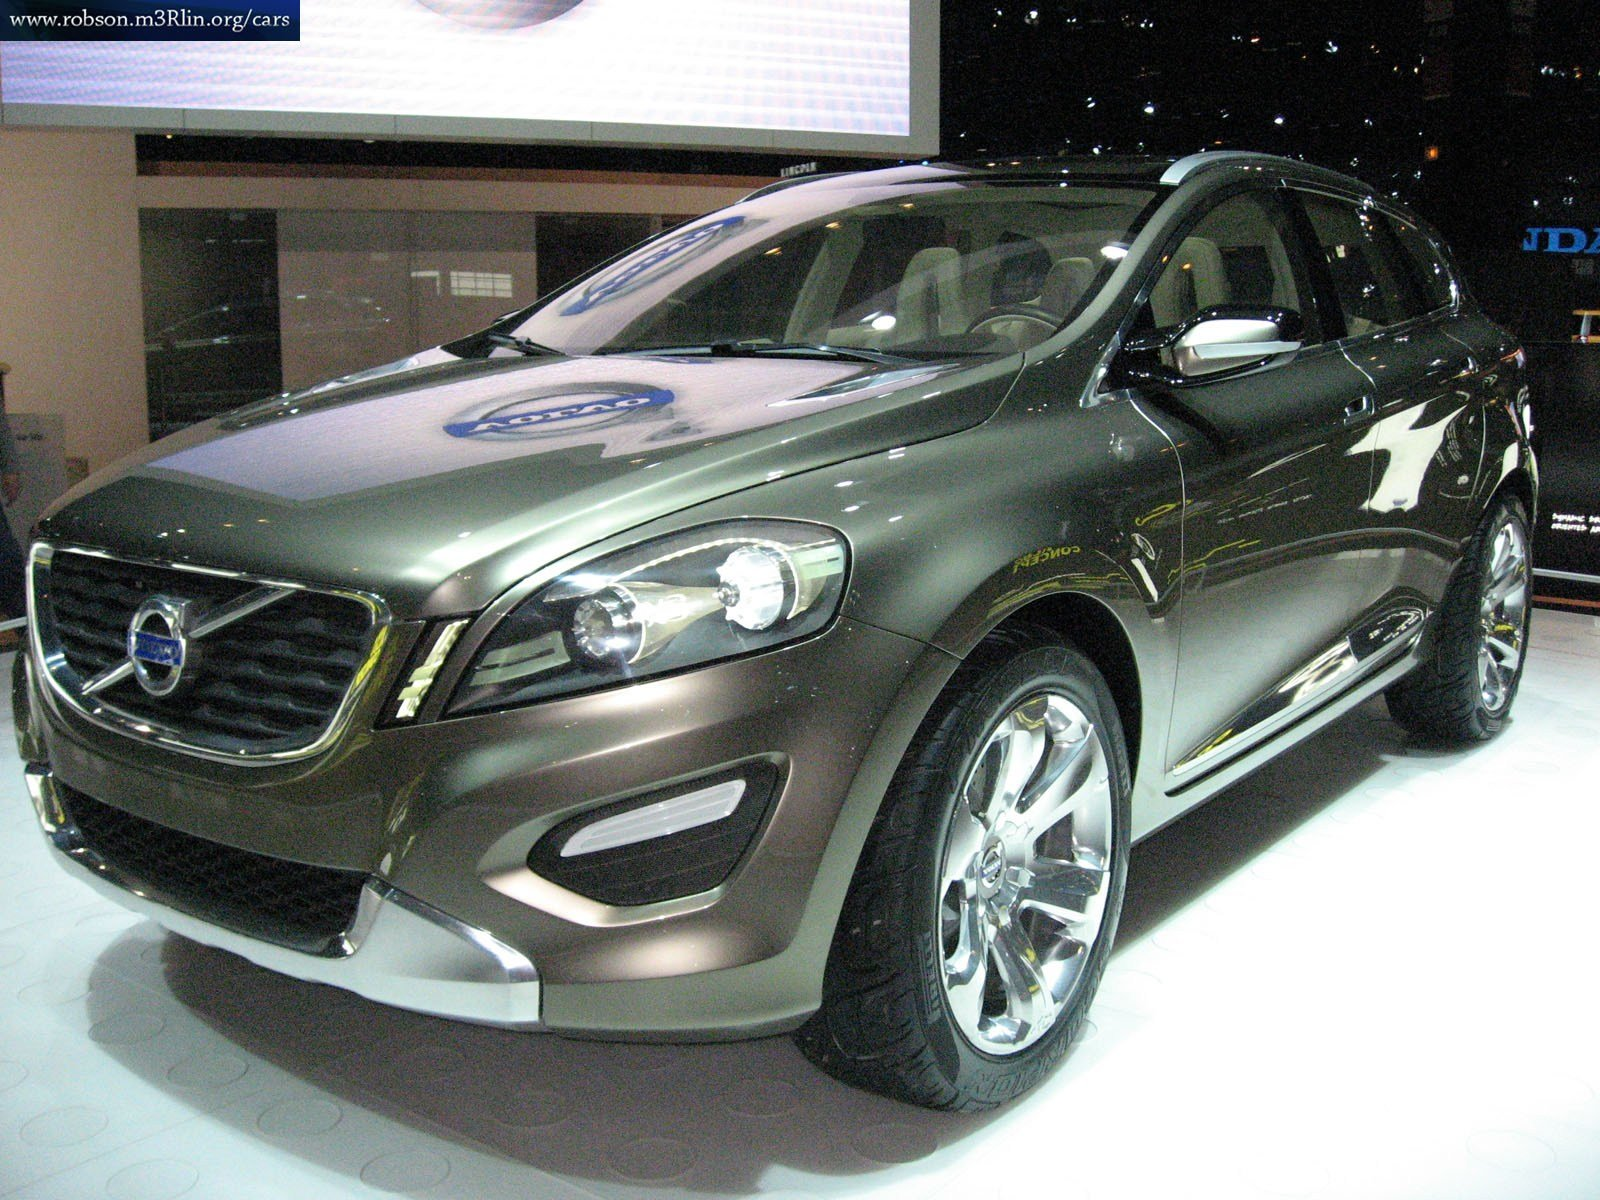 New Volvo Cars 44 Free Hd Car Wallpaper On This Month